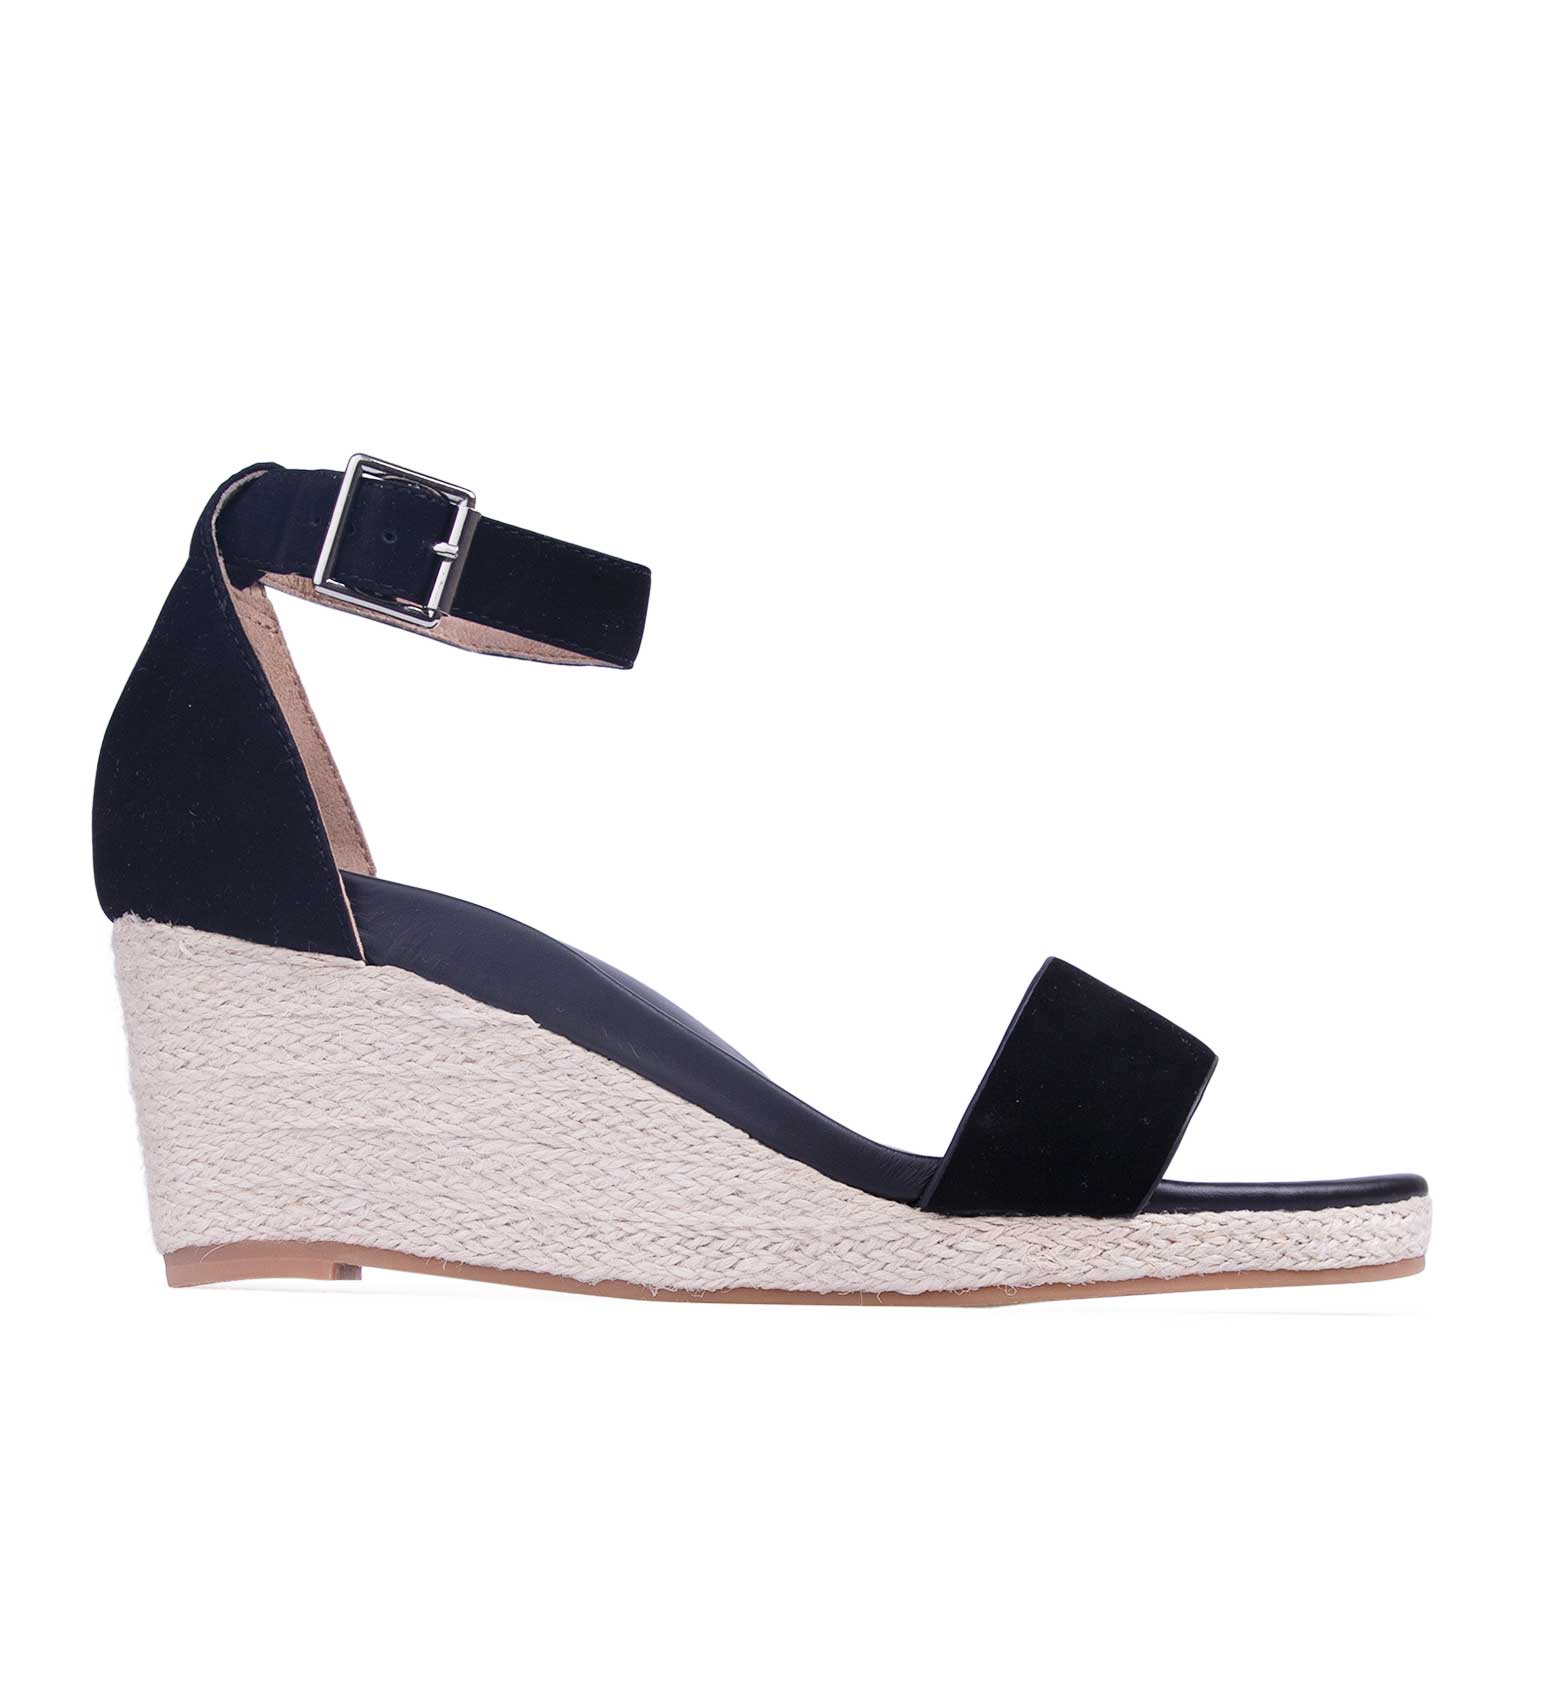 How to Women's Summer Sandals Styled By Sally